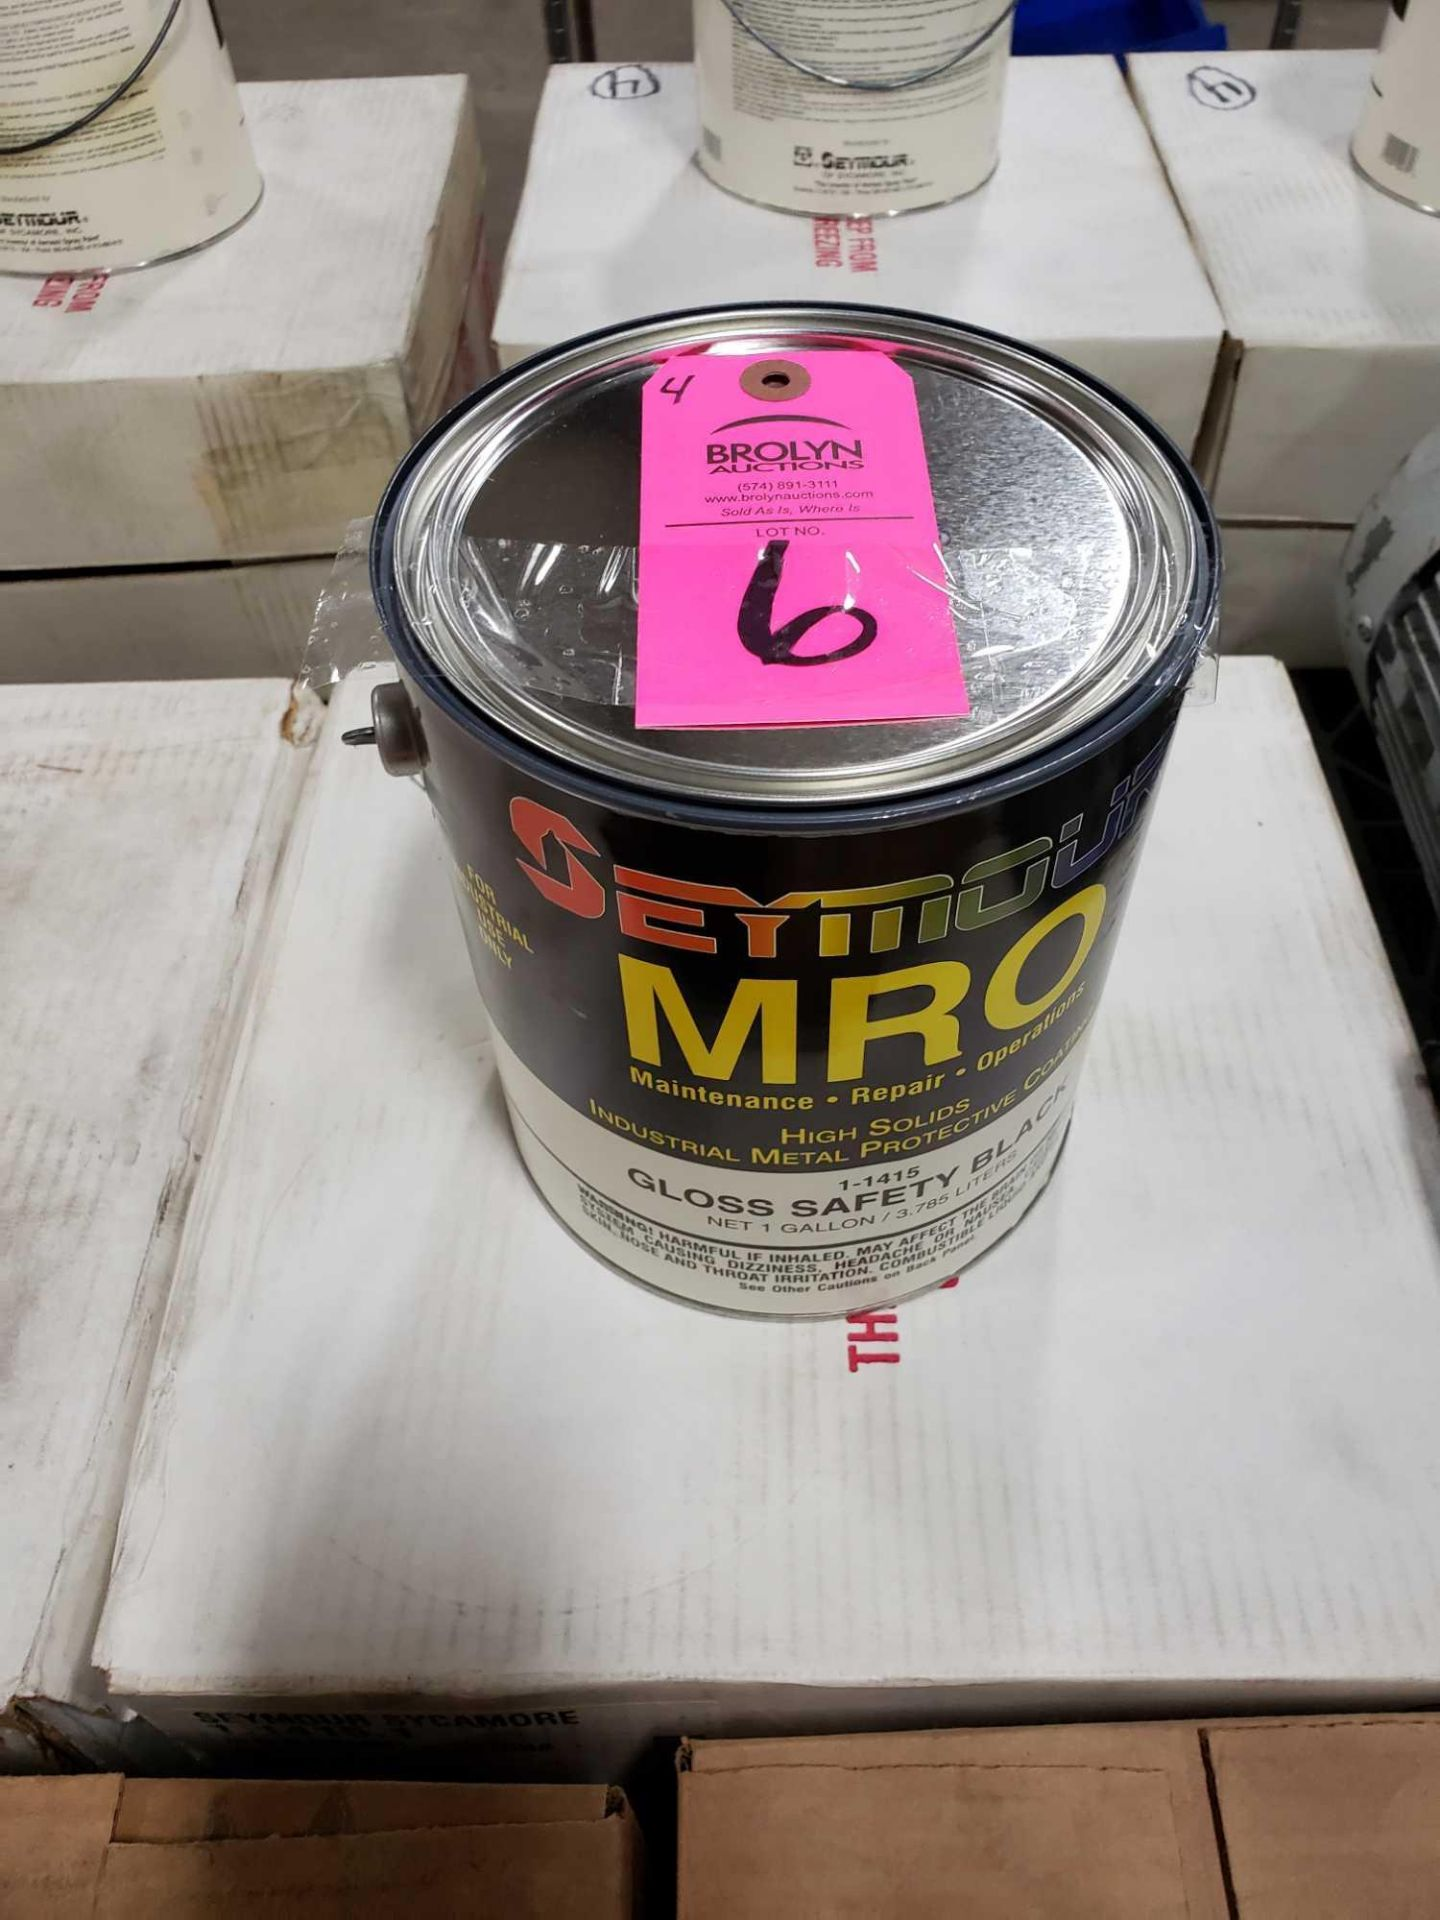 Lot 6 - Qty 4 - Seymour MRO paint Gloss Safety Black model 1-1415. New as pictured.